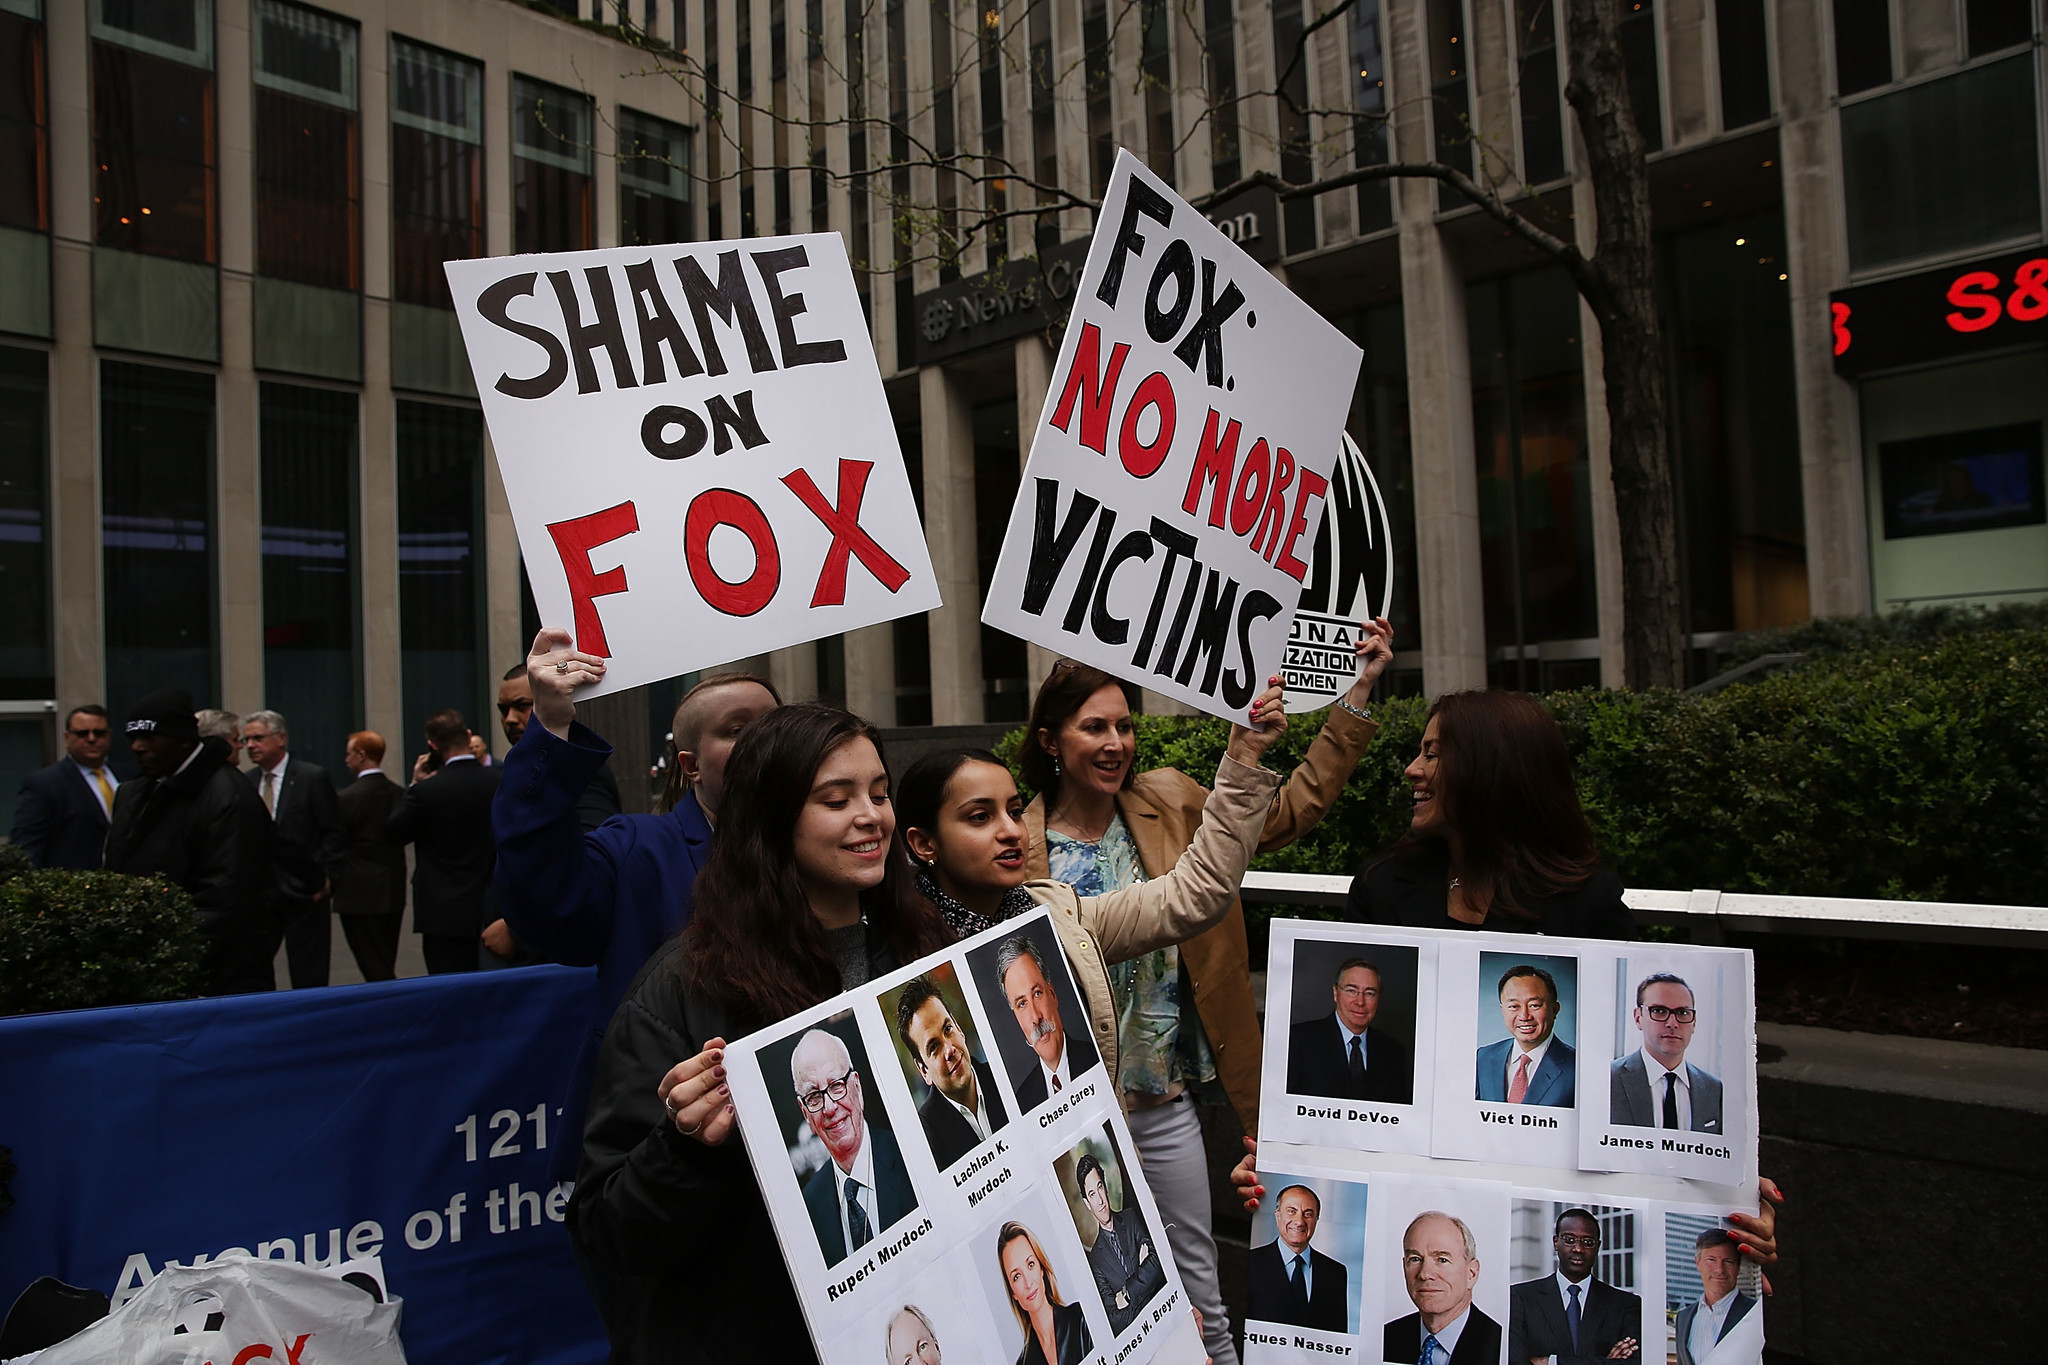 Fox News hit with new race discrimination lawsuits, allegations of 'plantation-style management'